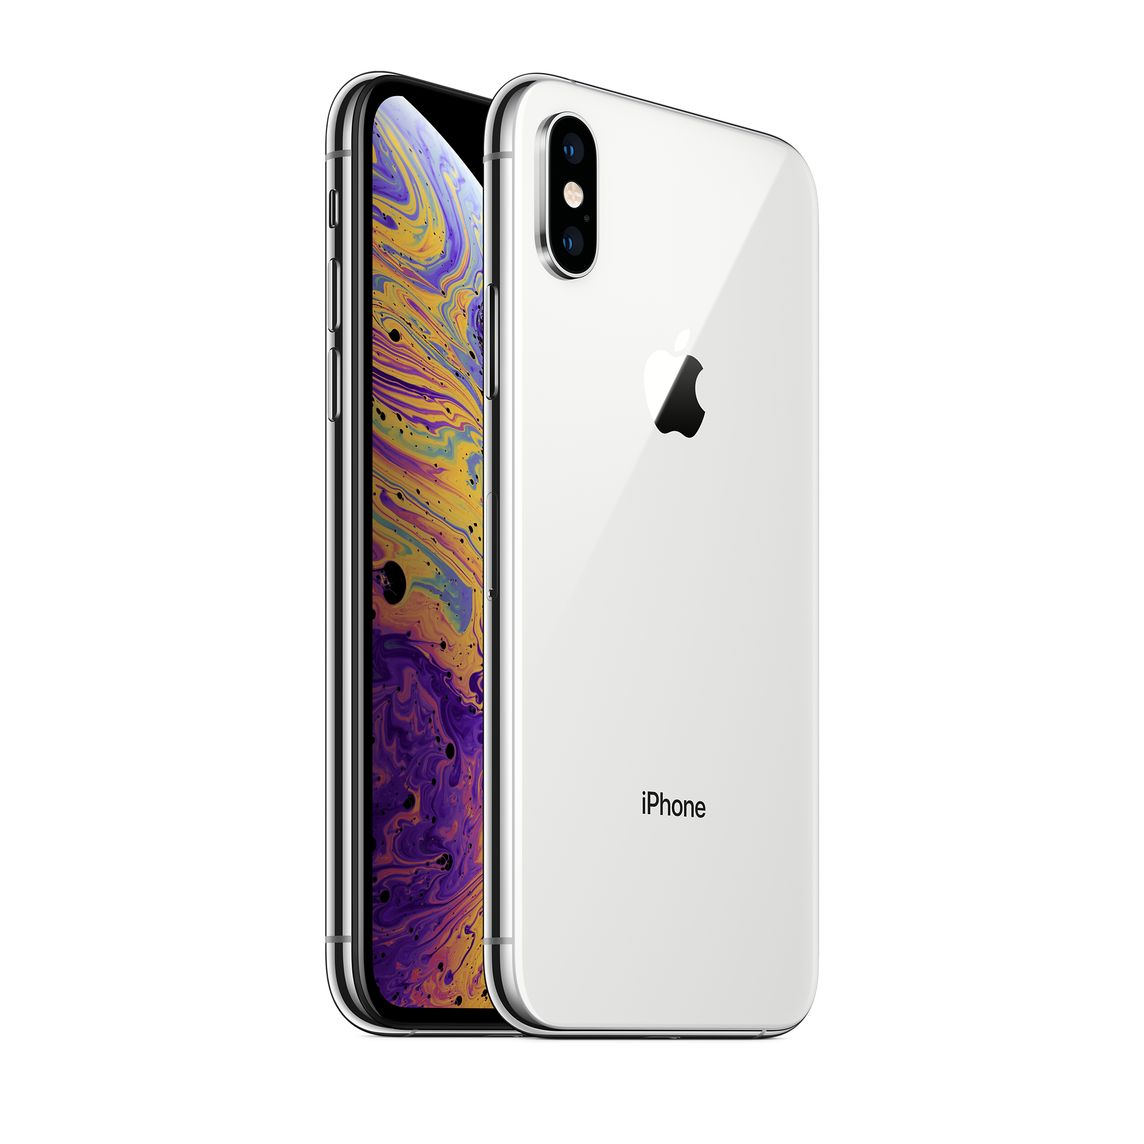 Refurbished iPhone XS 64GB - Silver (Unlocked) - Apple